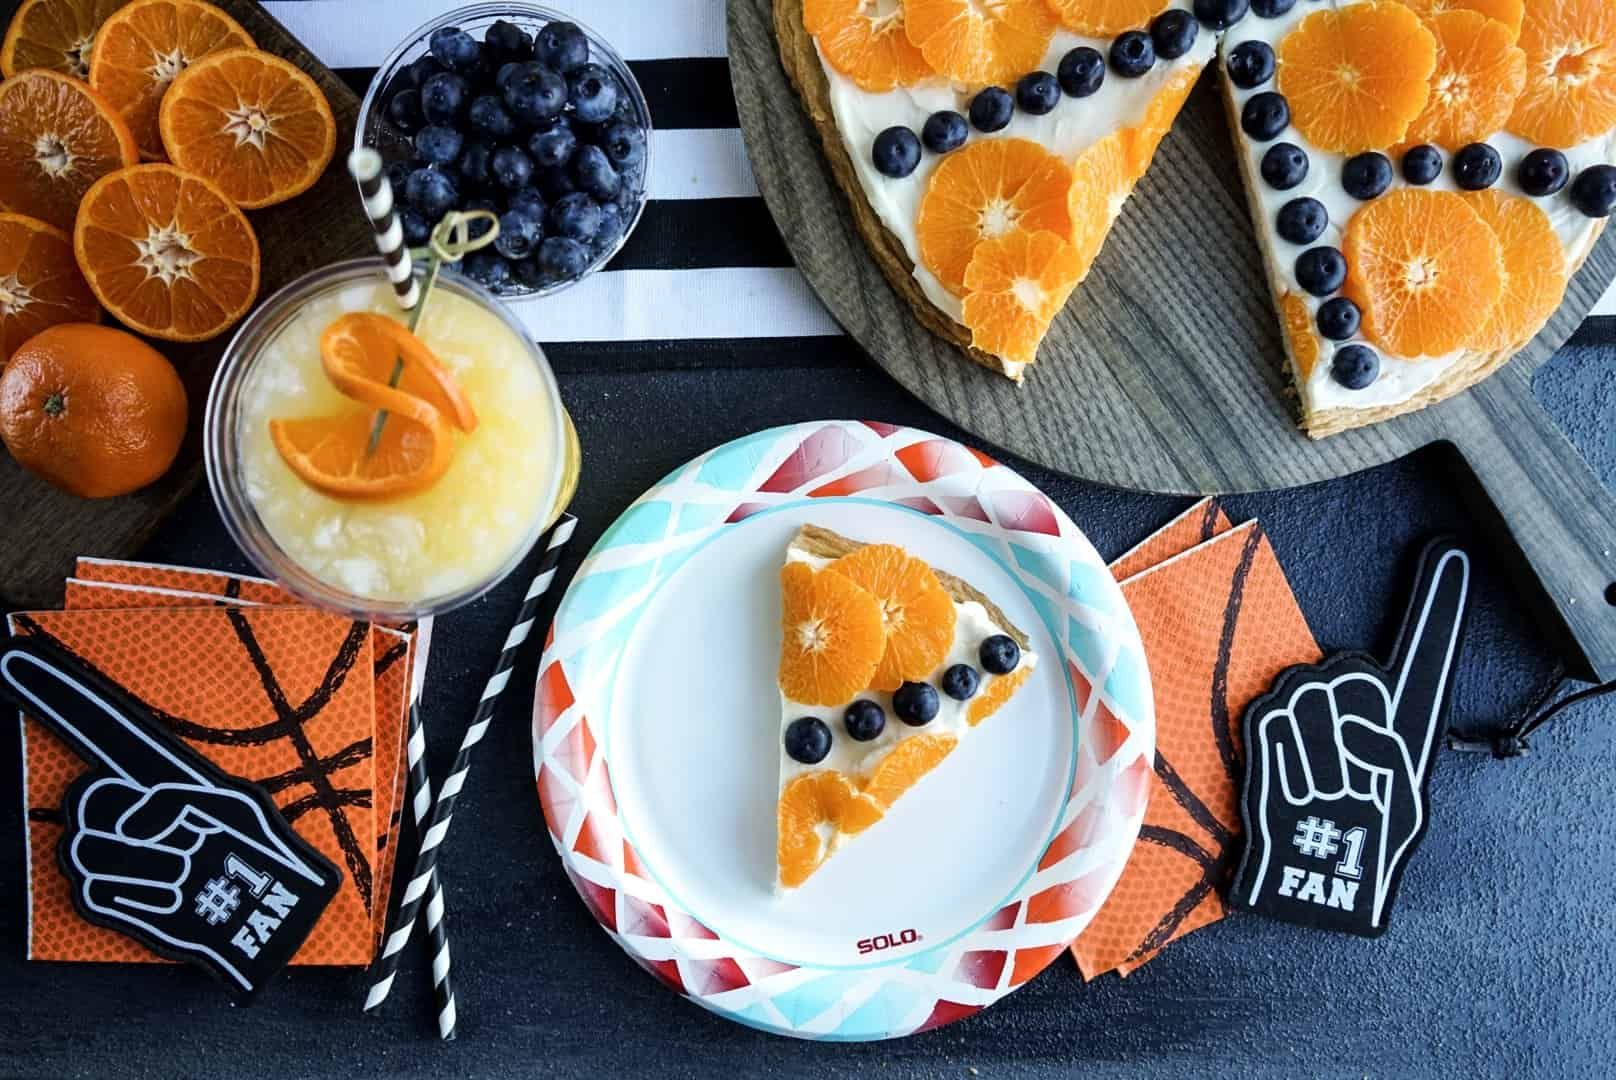 basketball fruit pizza slice on solo plate